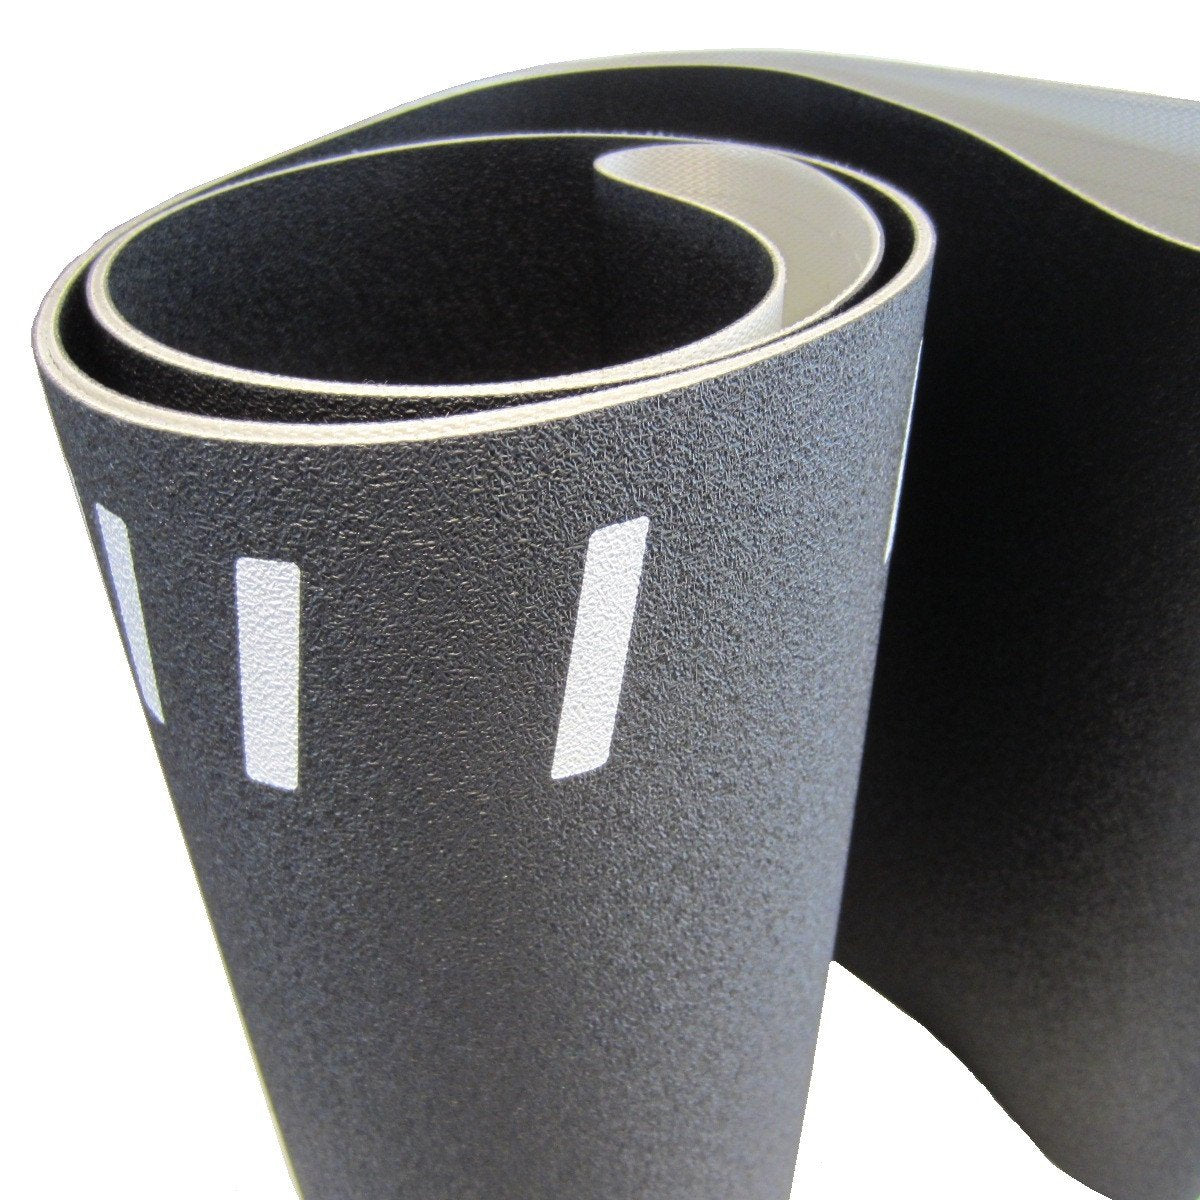 "Landice Treadmill Belt Replacement: Treadmill Running Belt 22"" X 130.75"" Fits Precor"